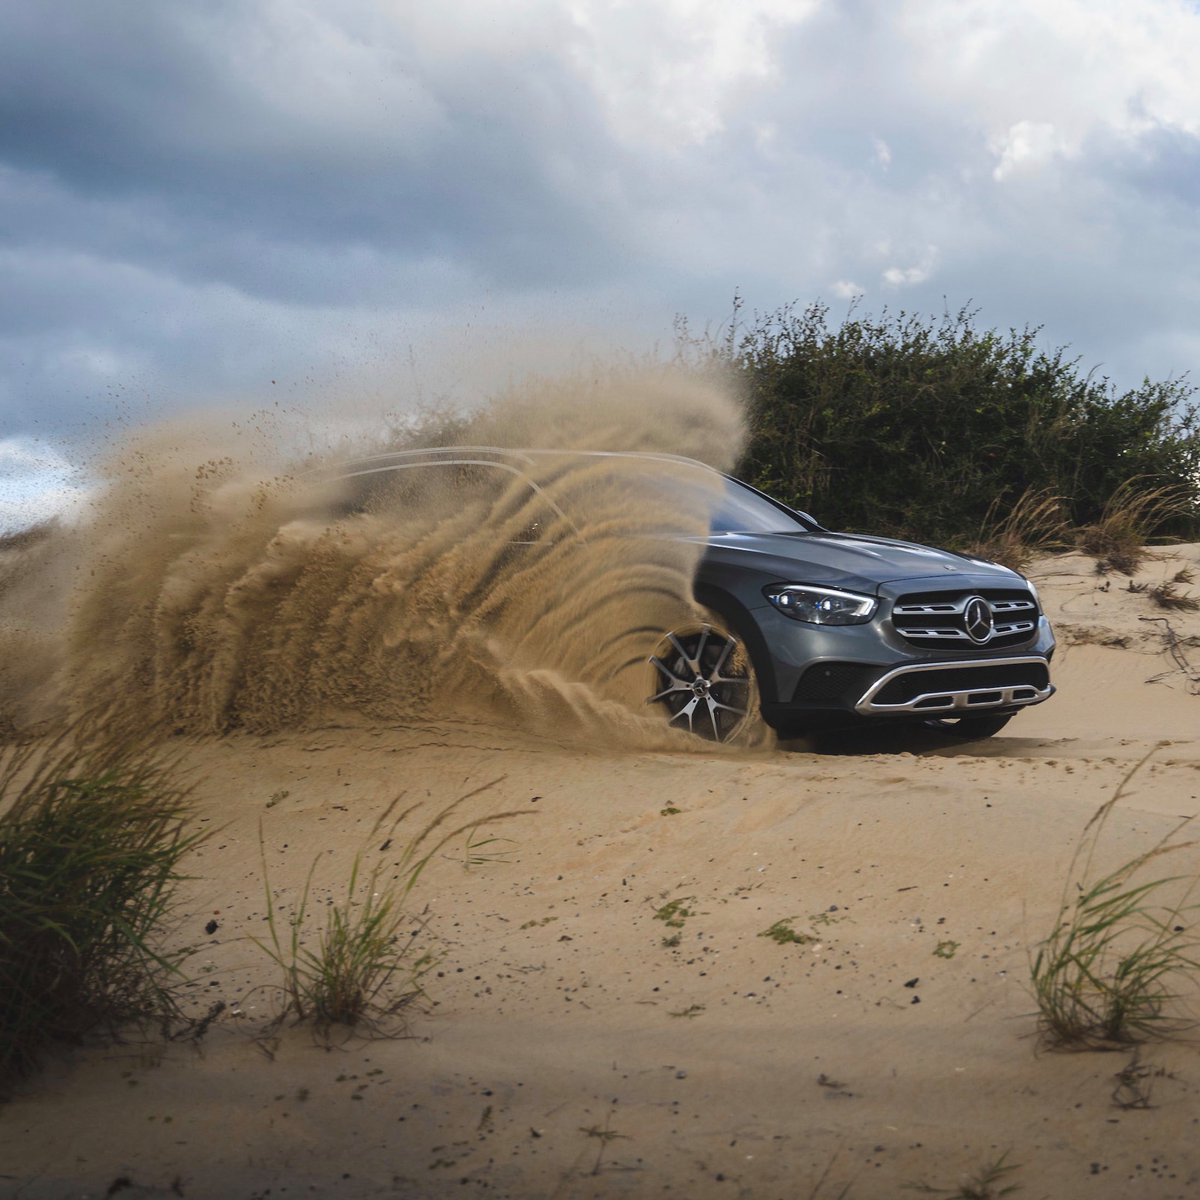 """4"" when you want to kick some dust up 😉  2021 @MercedesBenz E-Class All-Terrain https://t.co/tJlMHdq1qk"